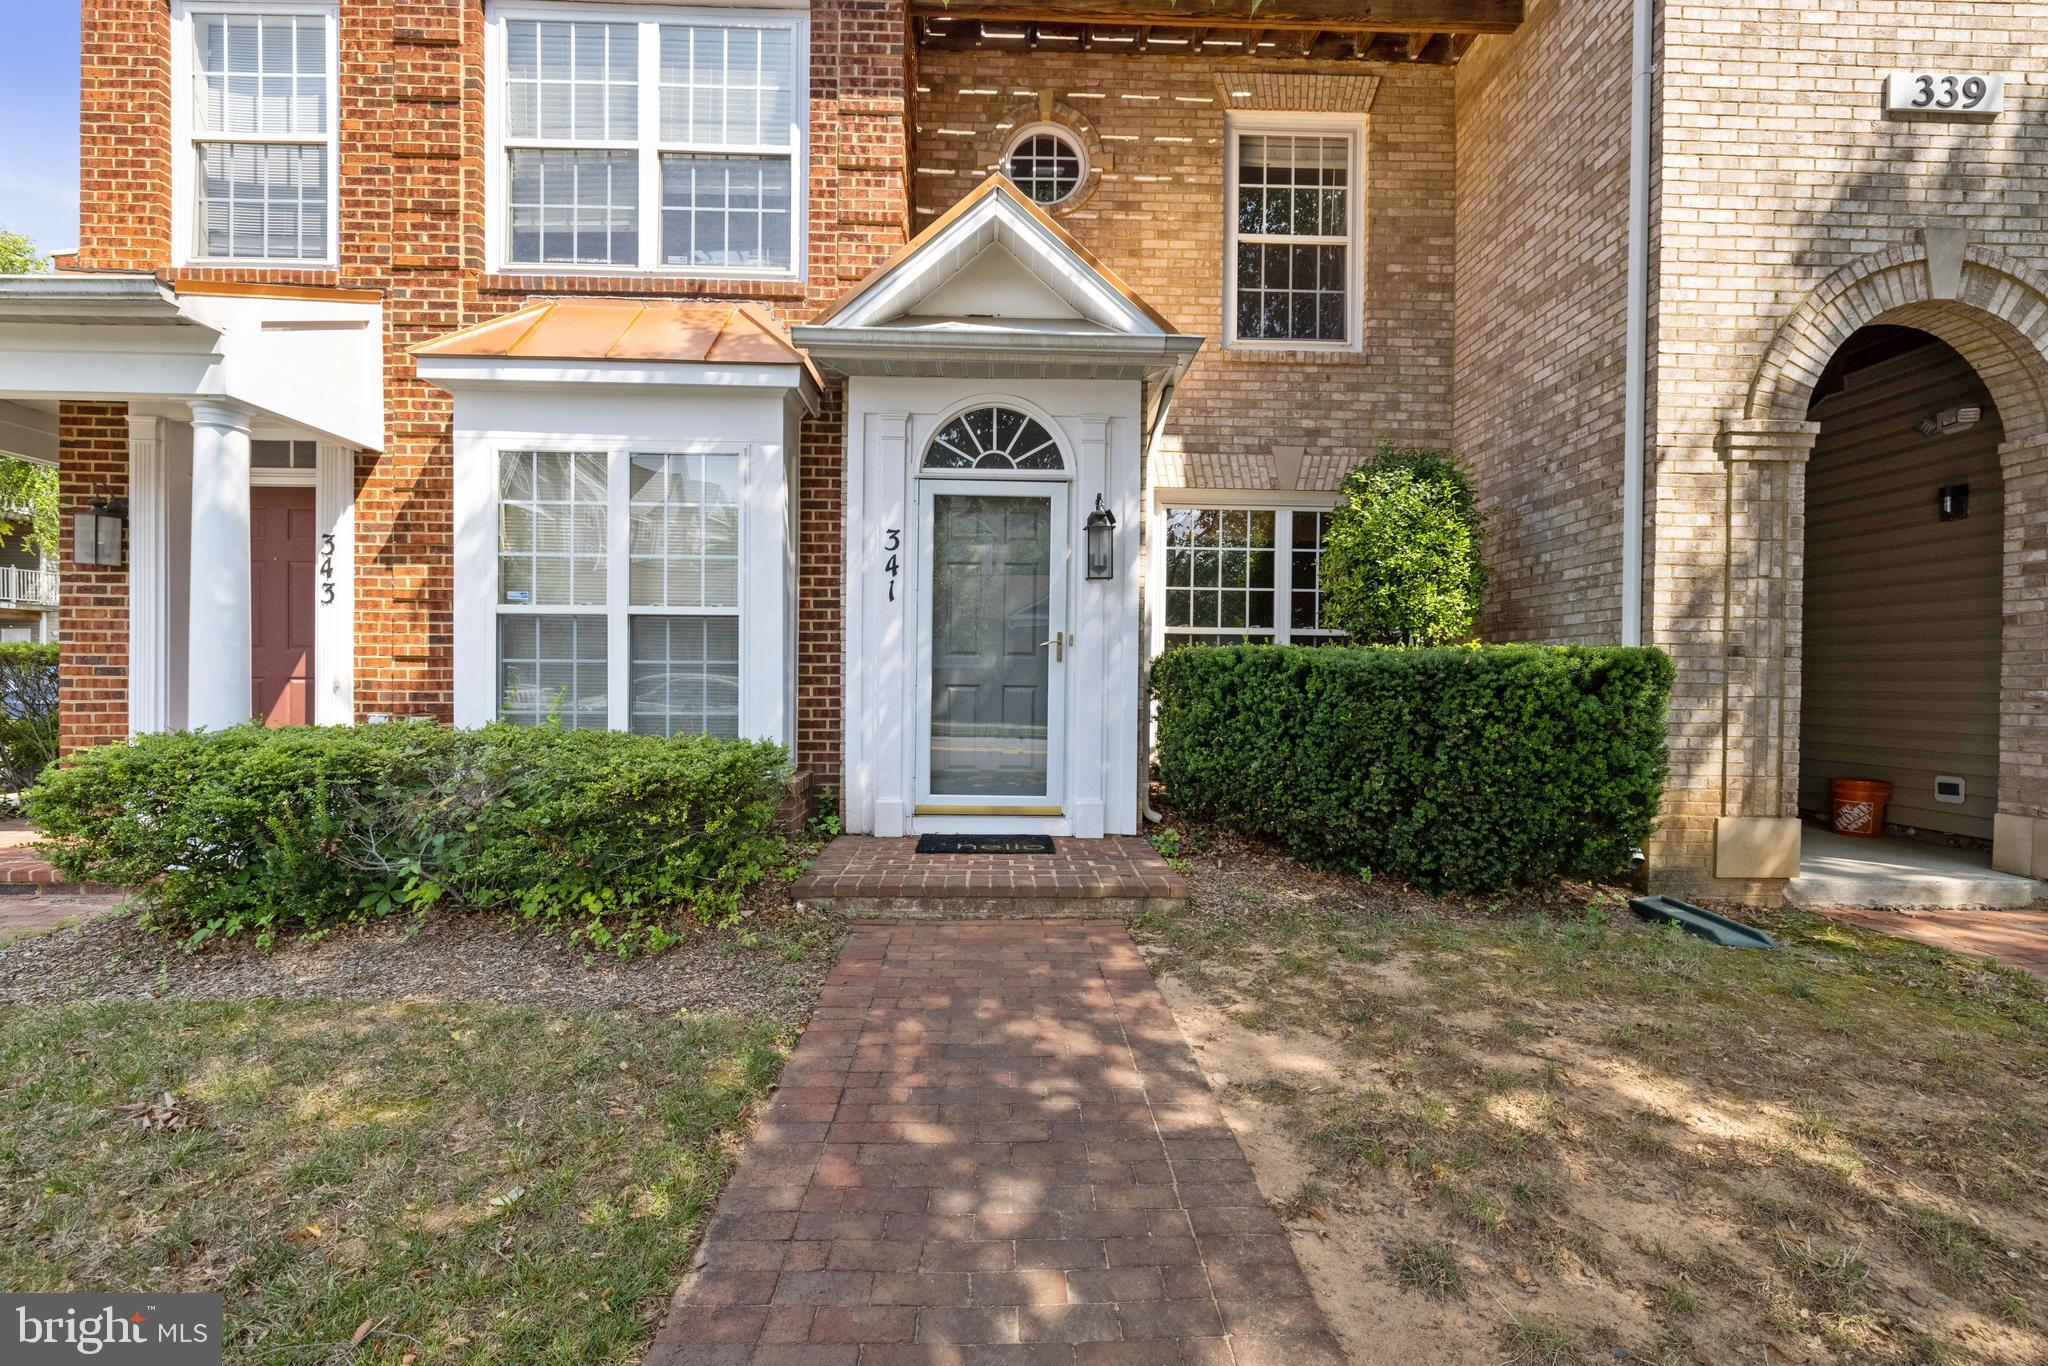 Gorgeous light-filled two-story condo townhome located in the highly sought after neighborhood of Fa